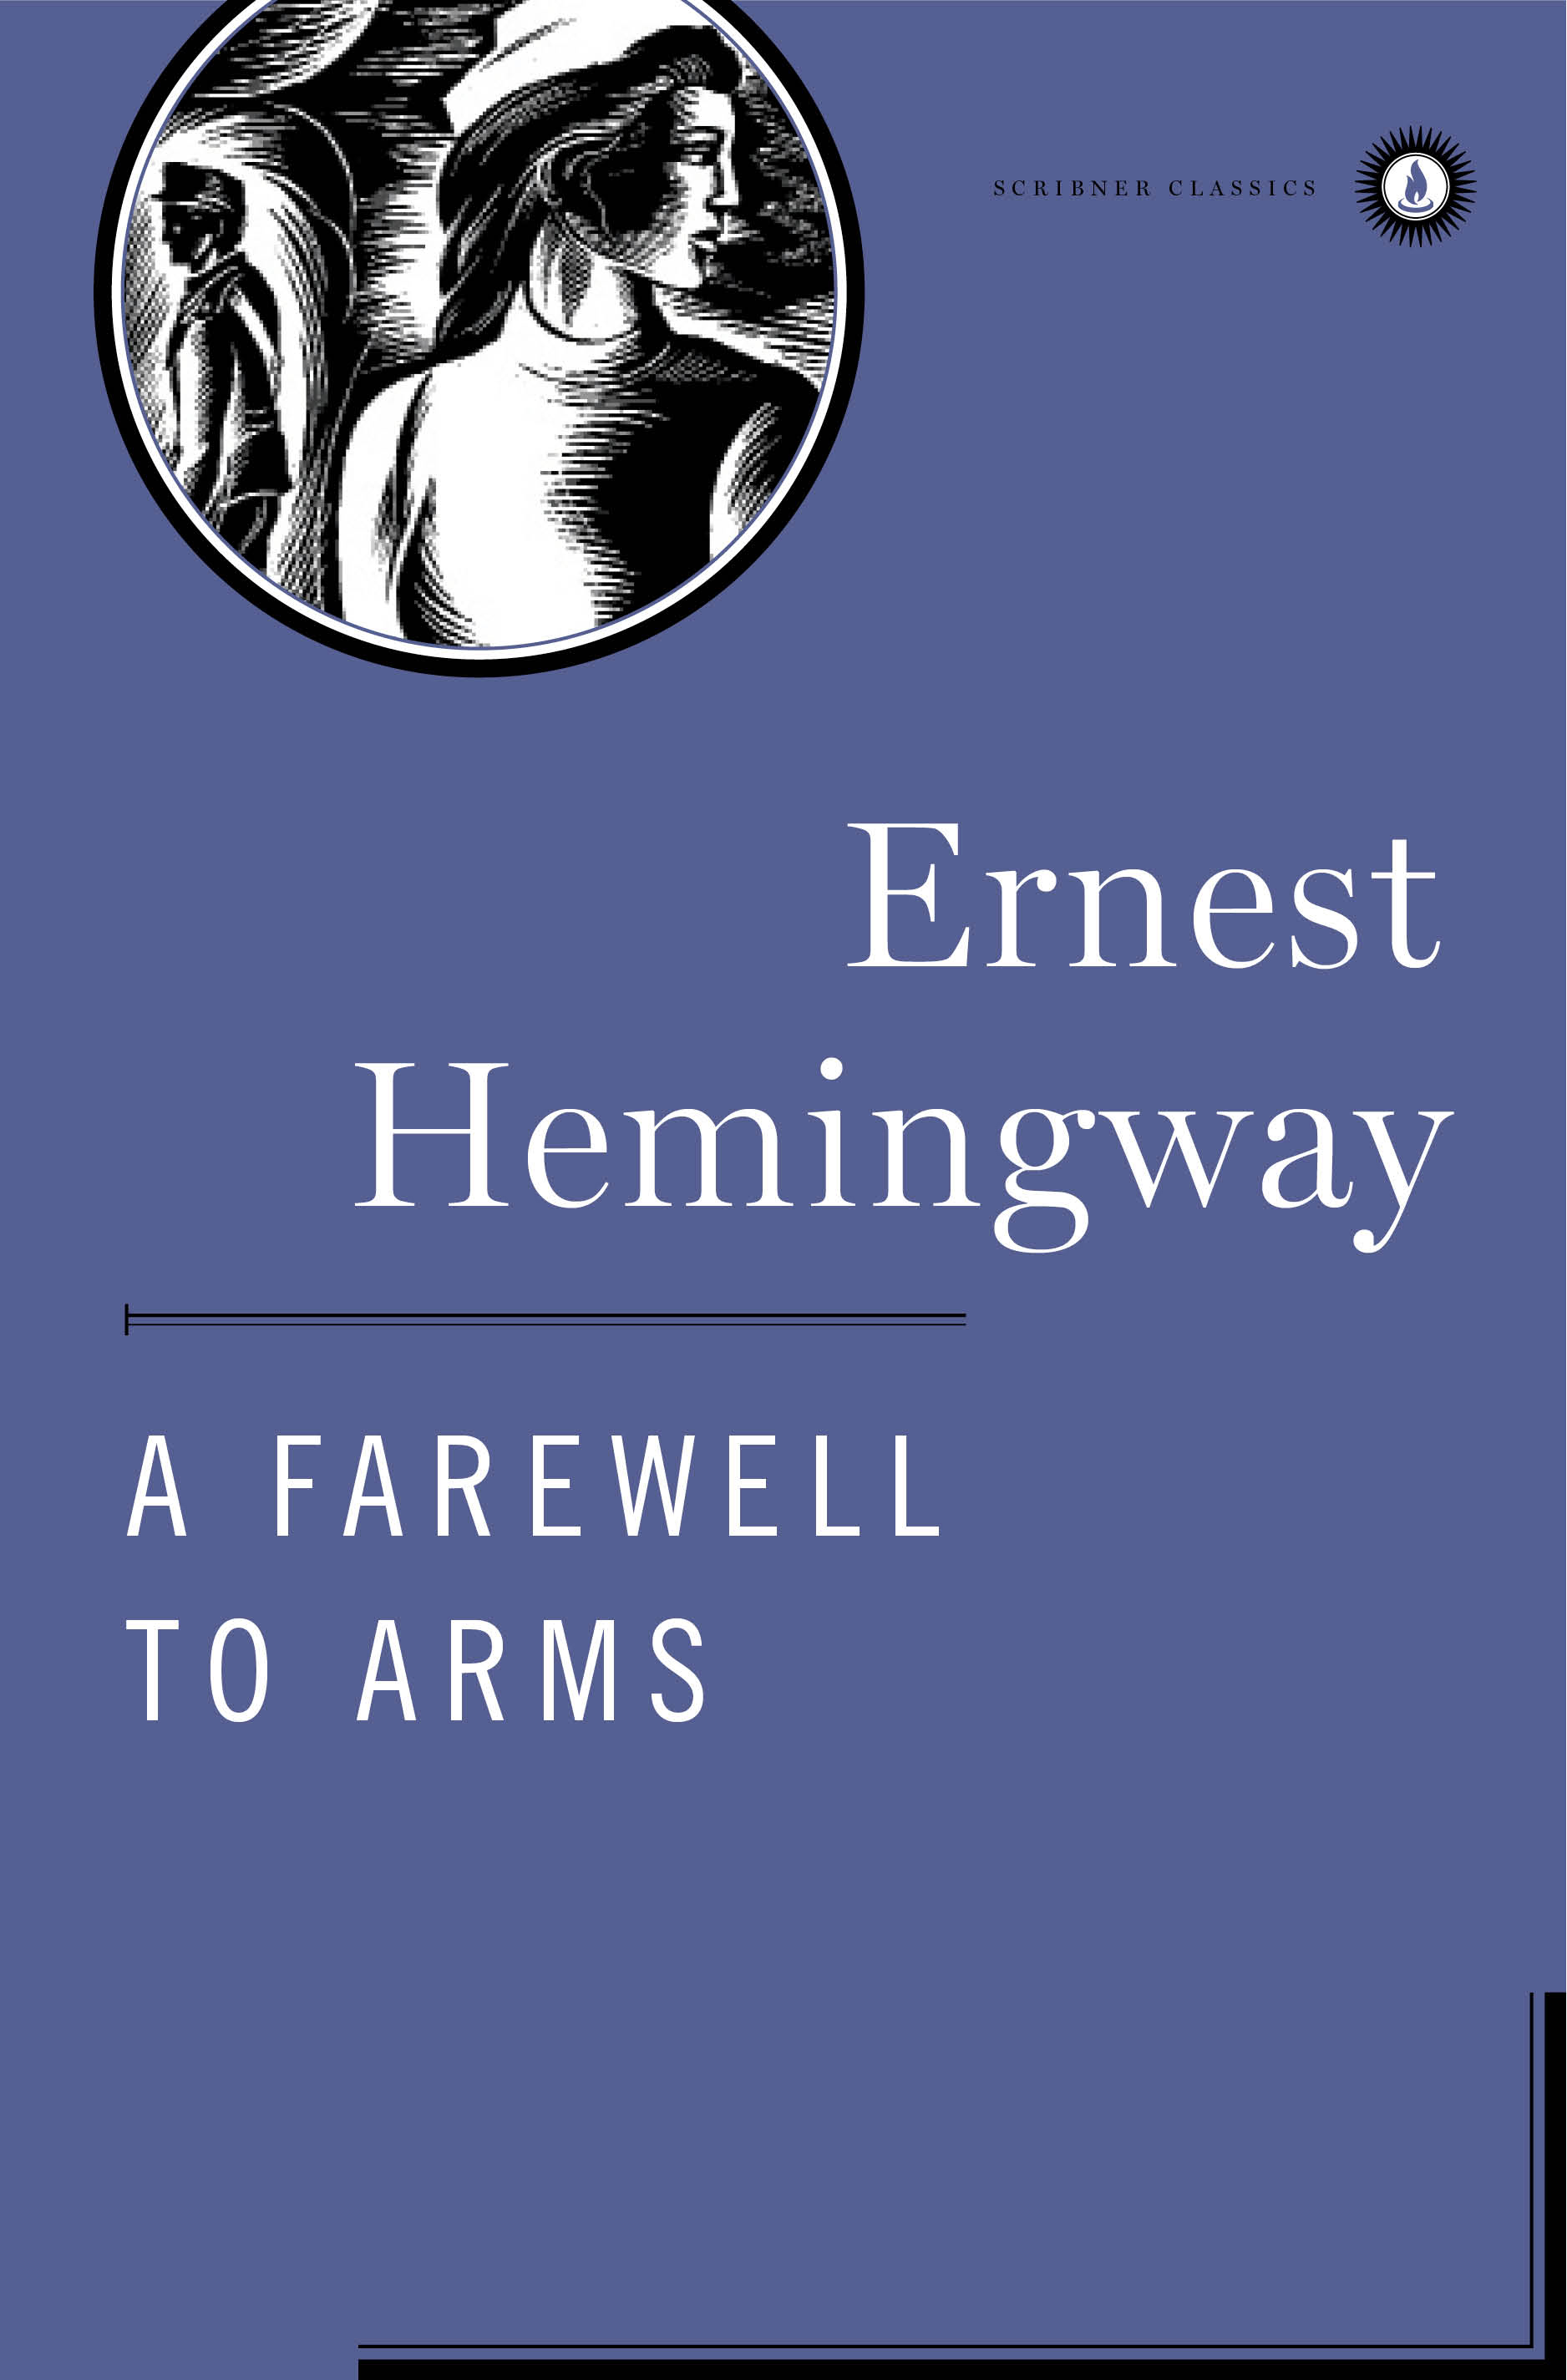 symbolism of rain in ernest hemingways a farewell to arms From the beginning up until the very end, rain serves as a powerful symbol of death and all the accompanying emotions of grief, pain and despair.